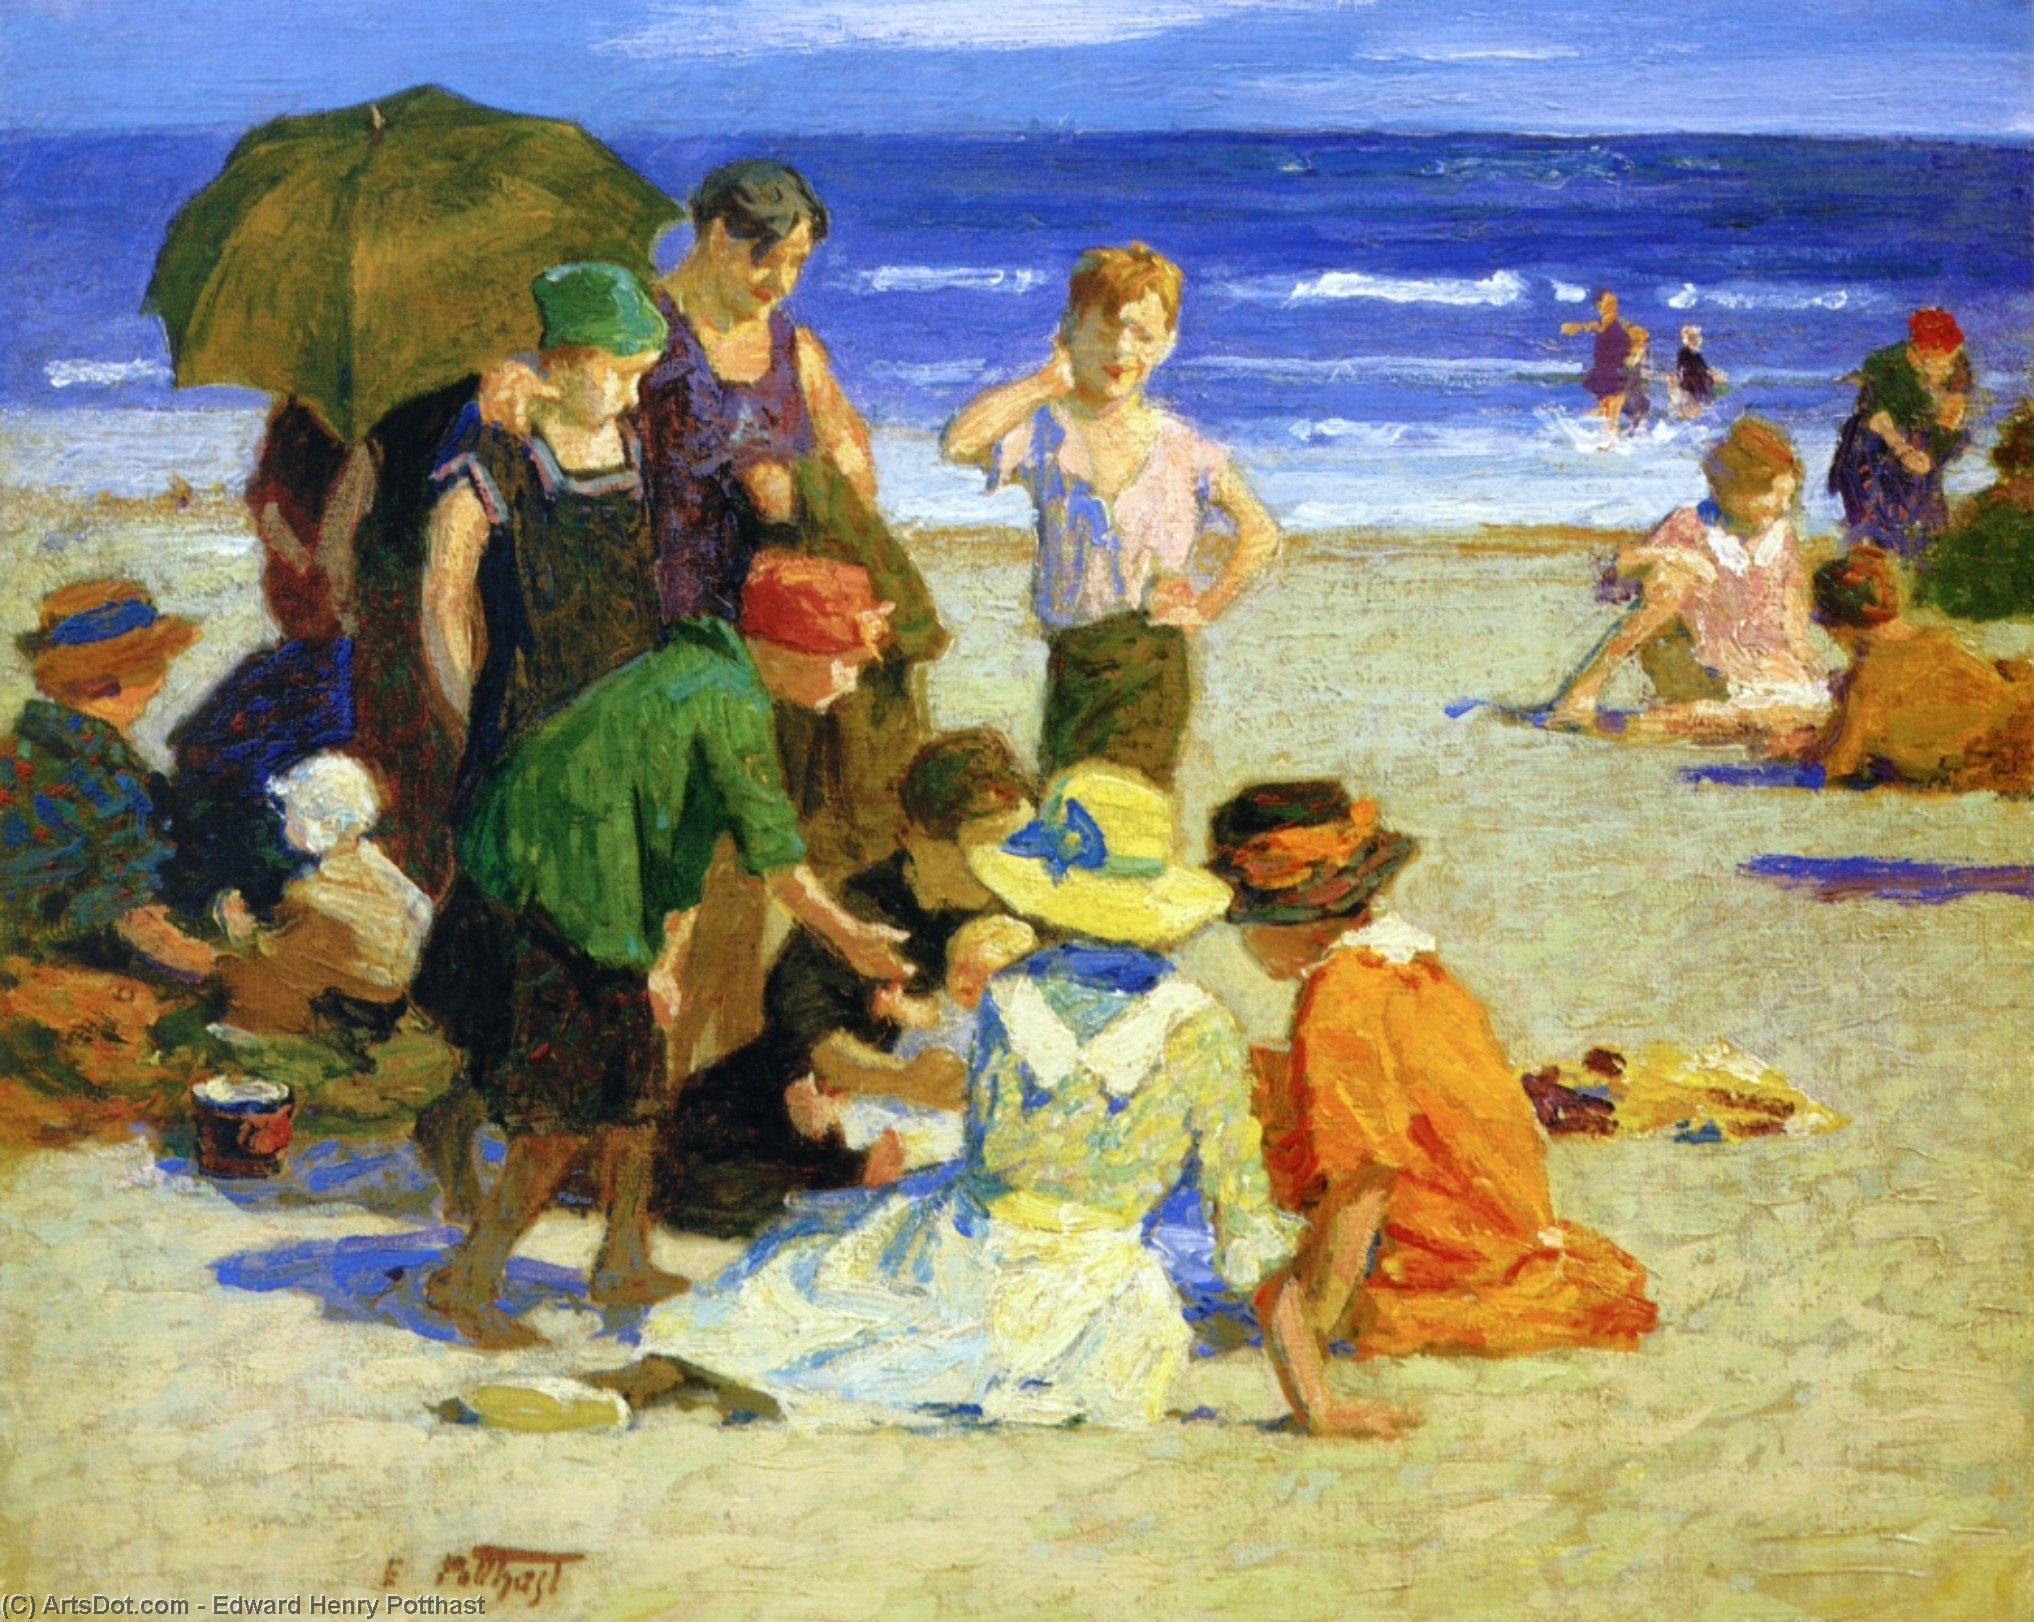 A Family Outing 1 by Edward Henry Potthast (1857-1927, United States) | Museum Art Reproductions Edward Henry Potthast | ArtsDot.com